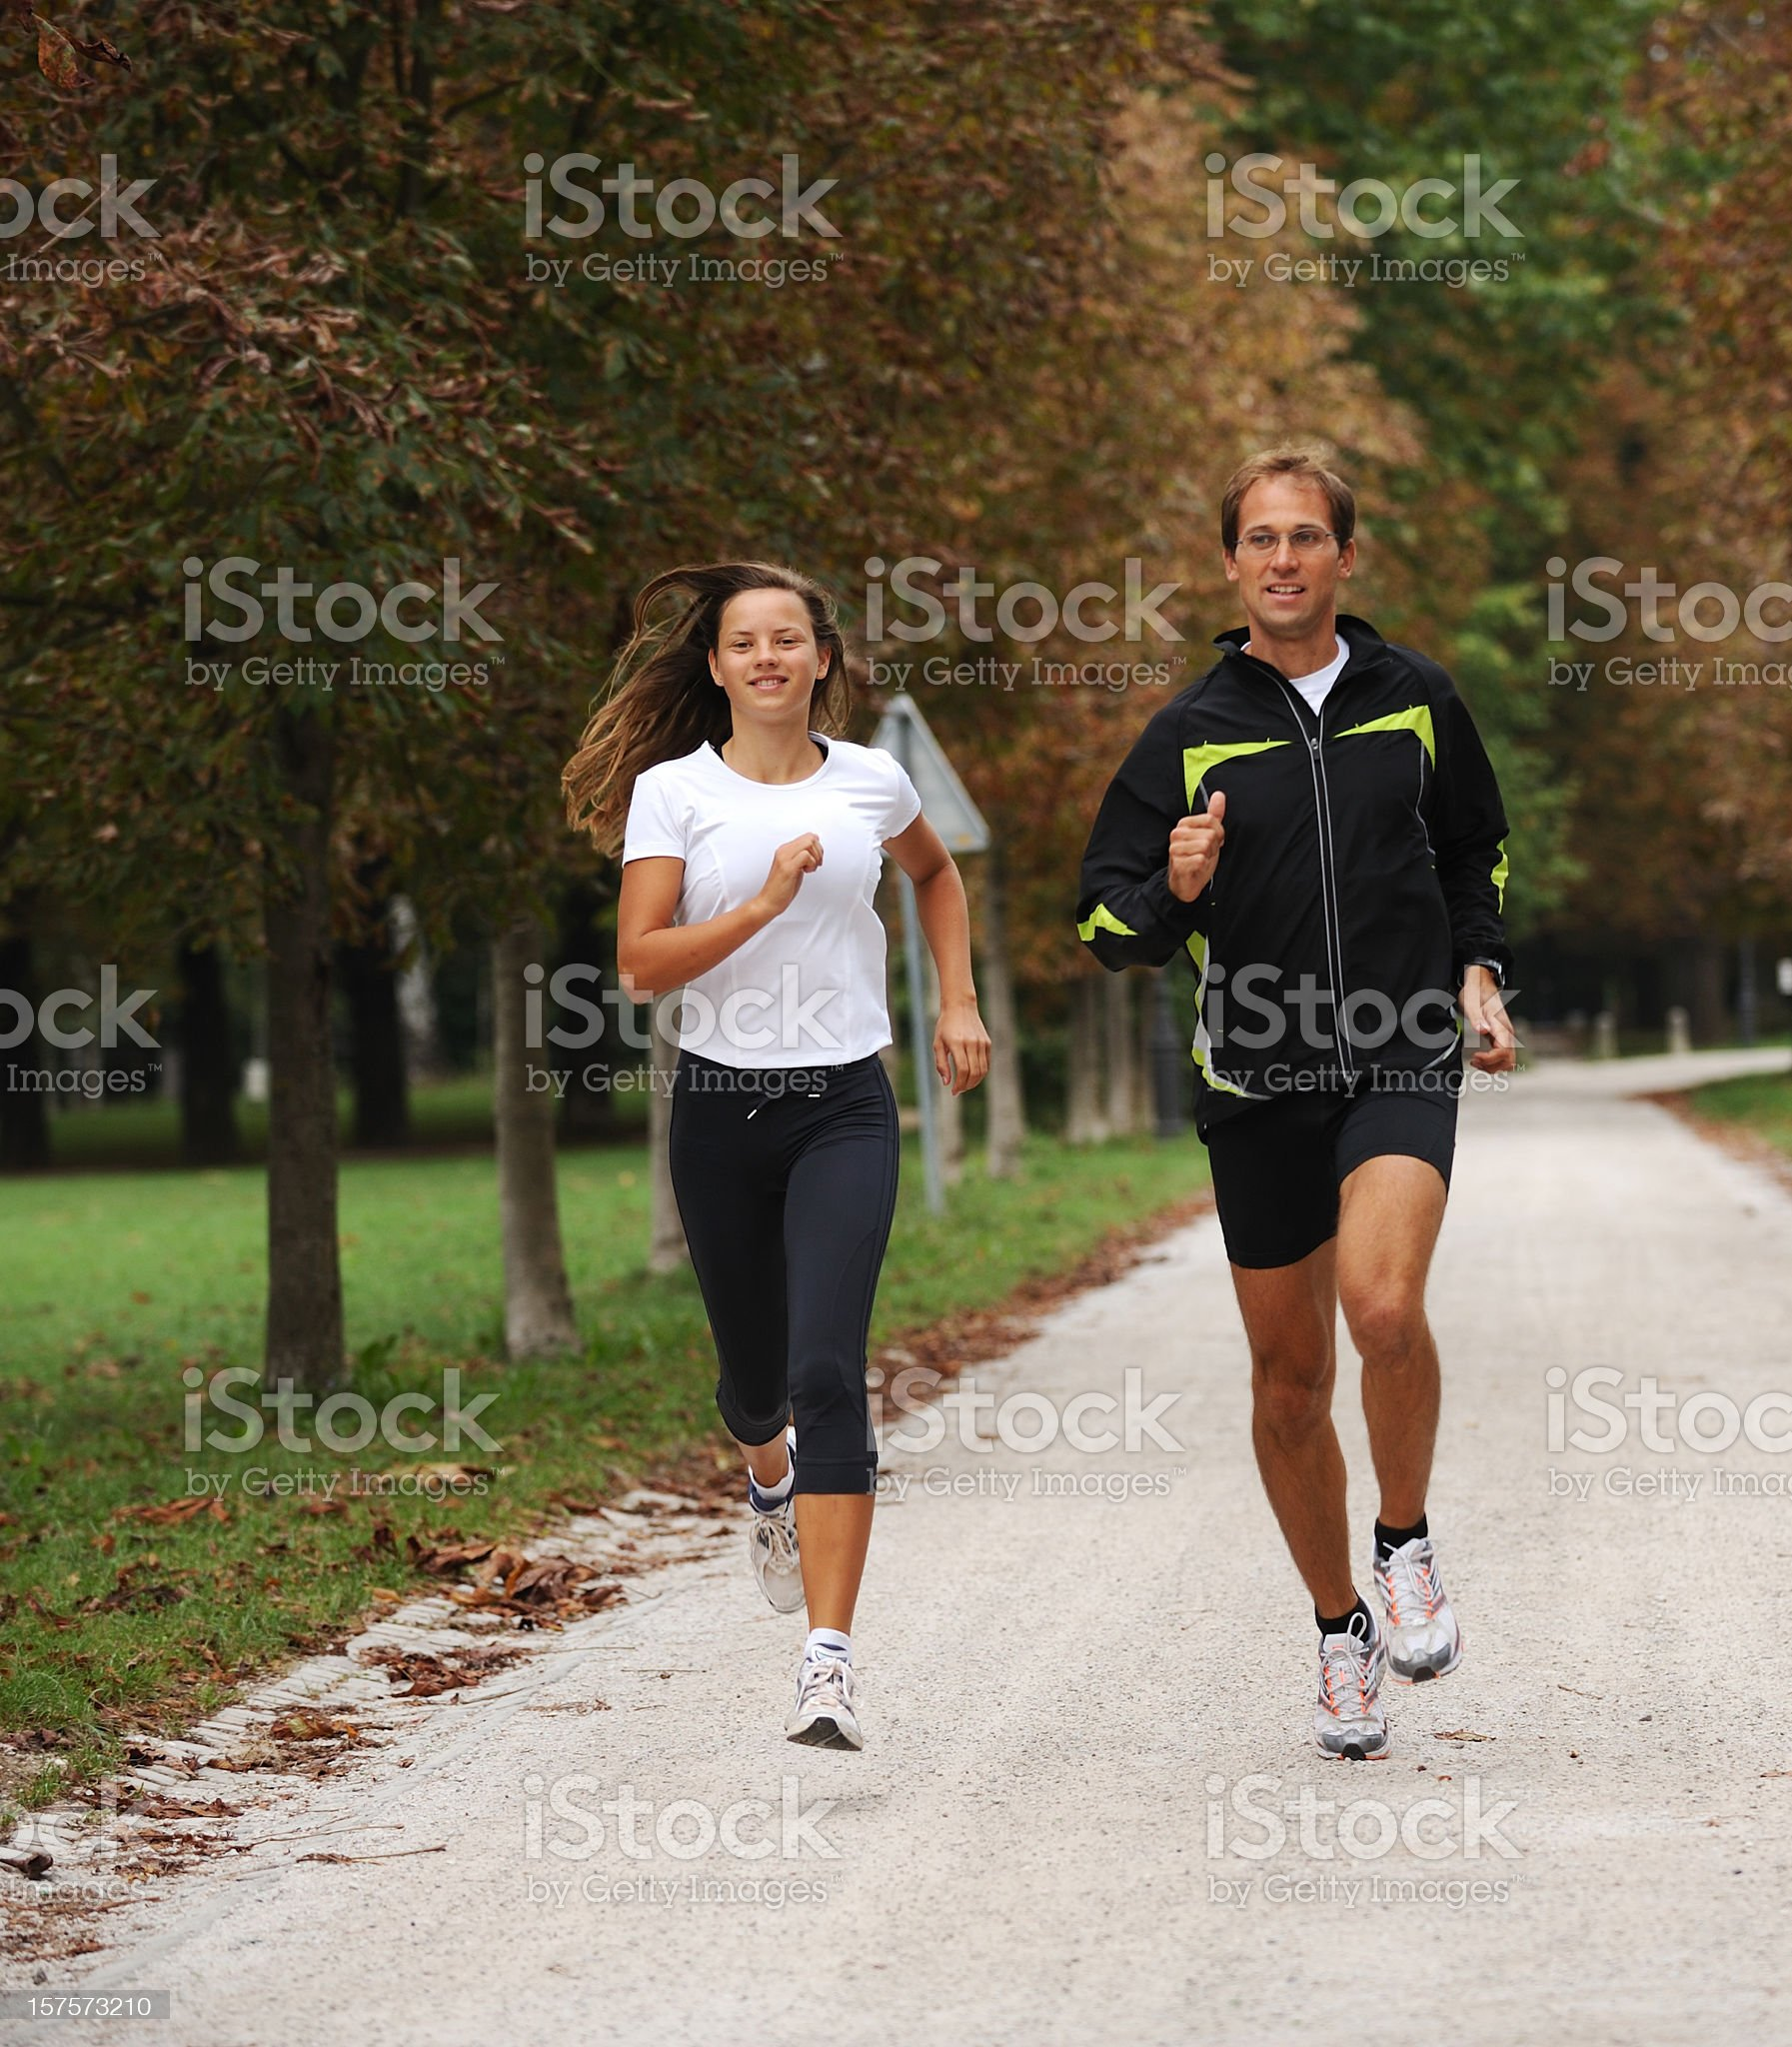 Two athletes jogging royalty-free stock photo